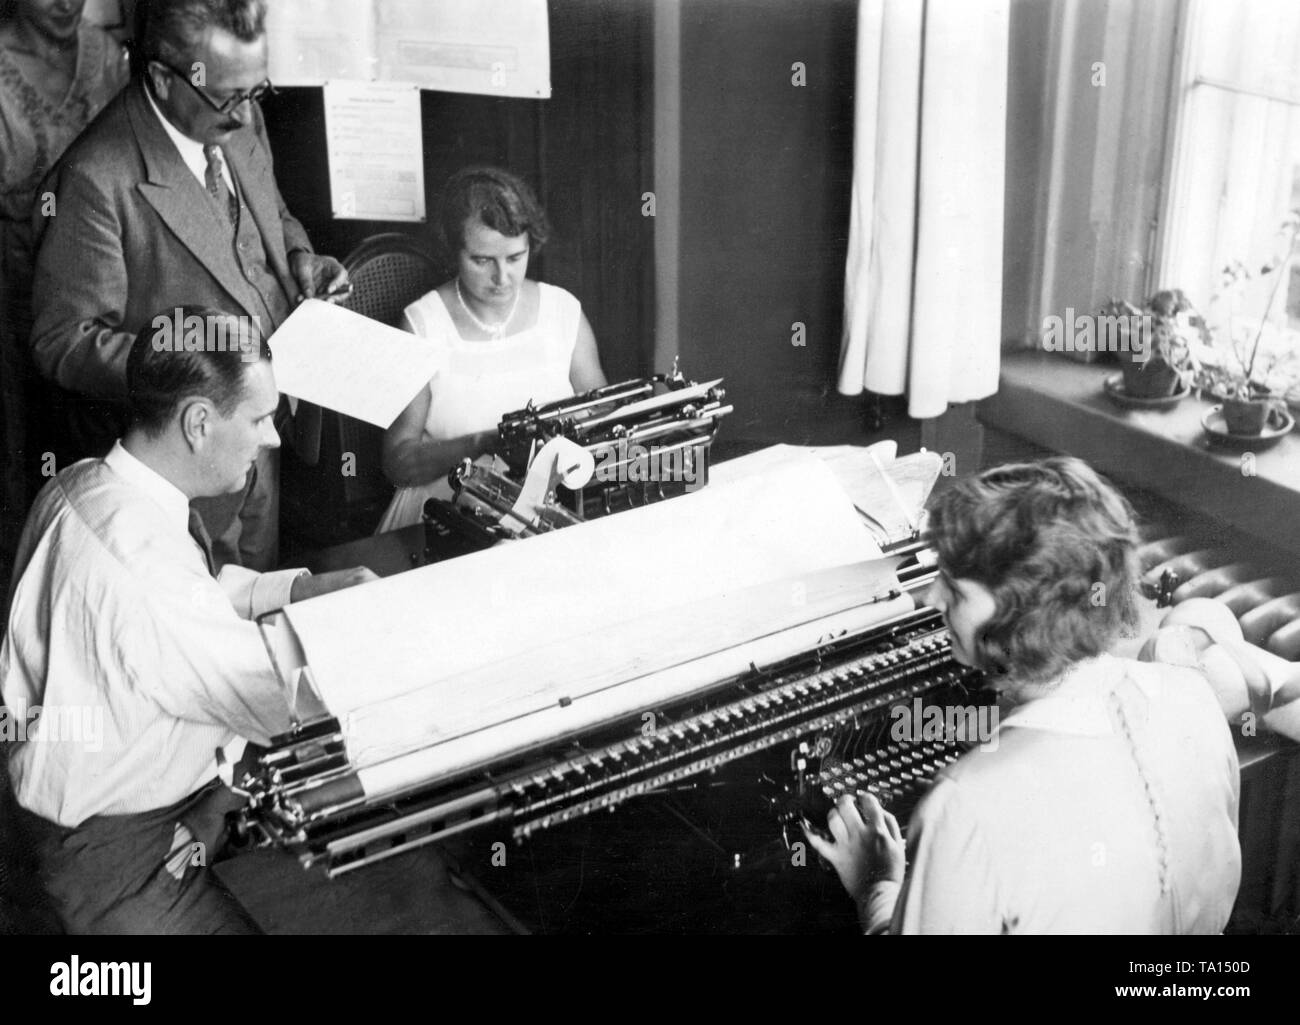 Counting votes at the Berlin electoral office on the occasion of the Reichstag election . Dr. Lohmann, head of the news office, is assisting the counting with his co-worker. In the foreground the largest counting machine in Europe. Stock Photo